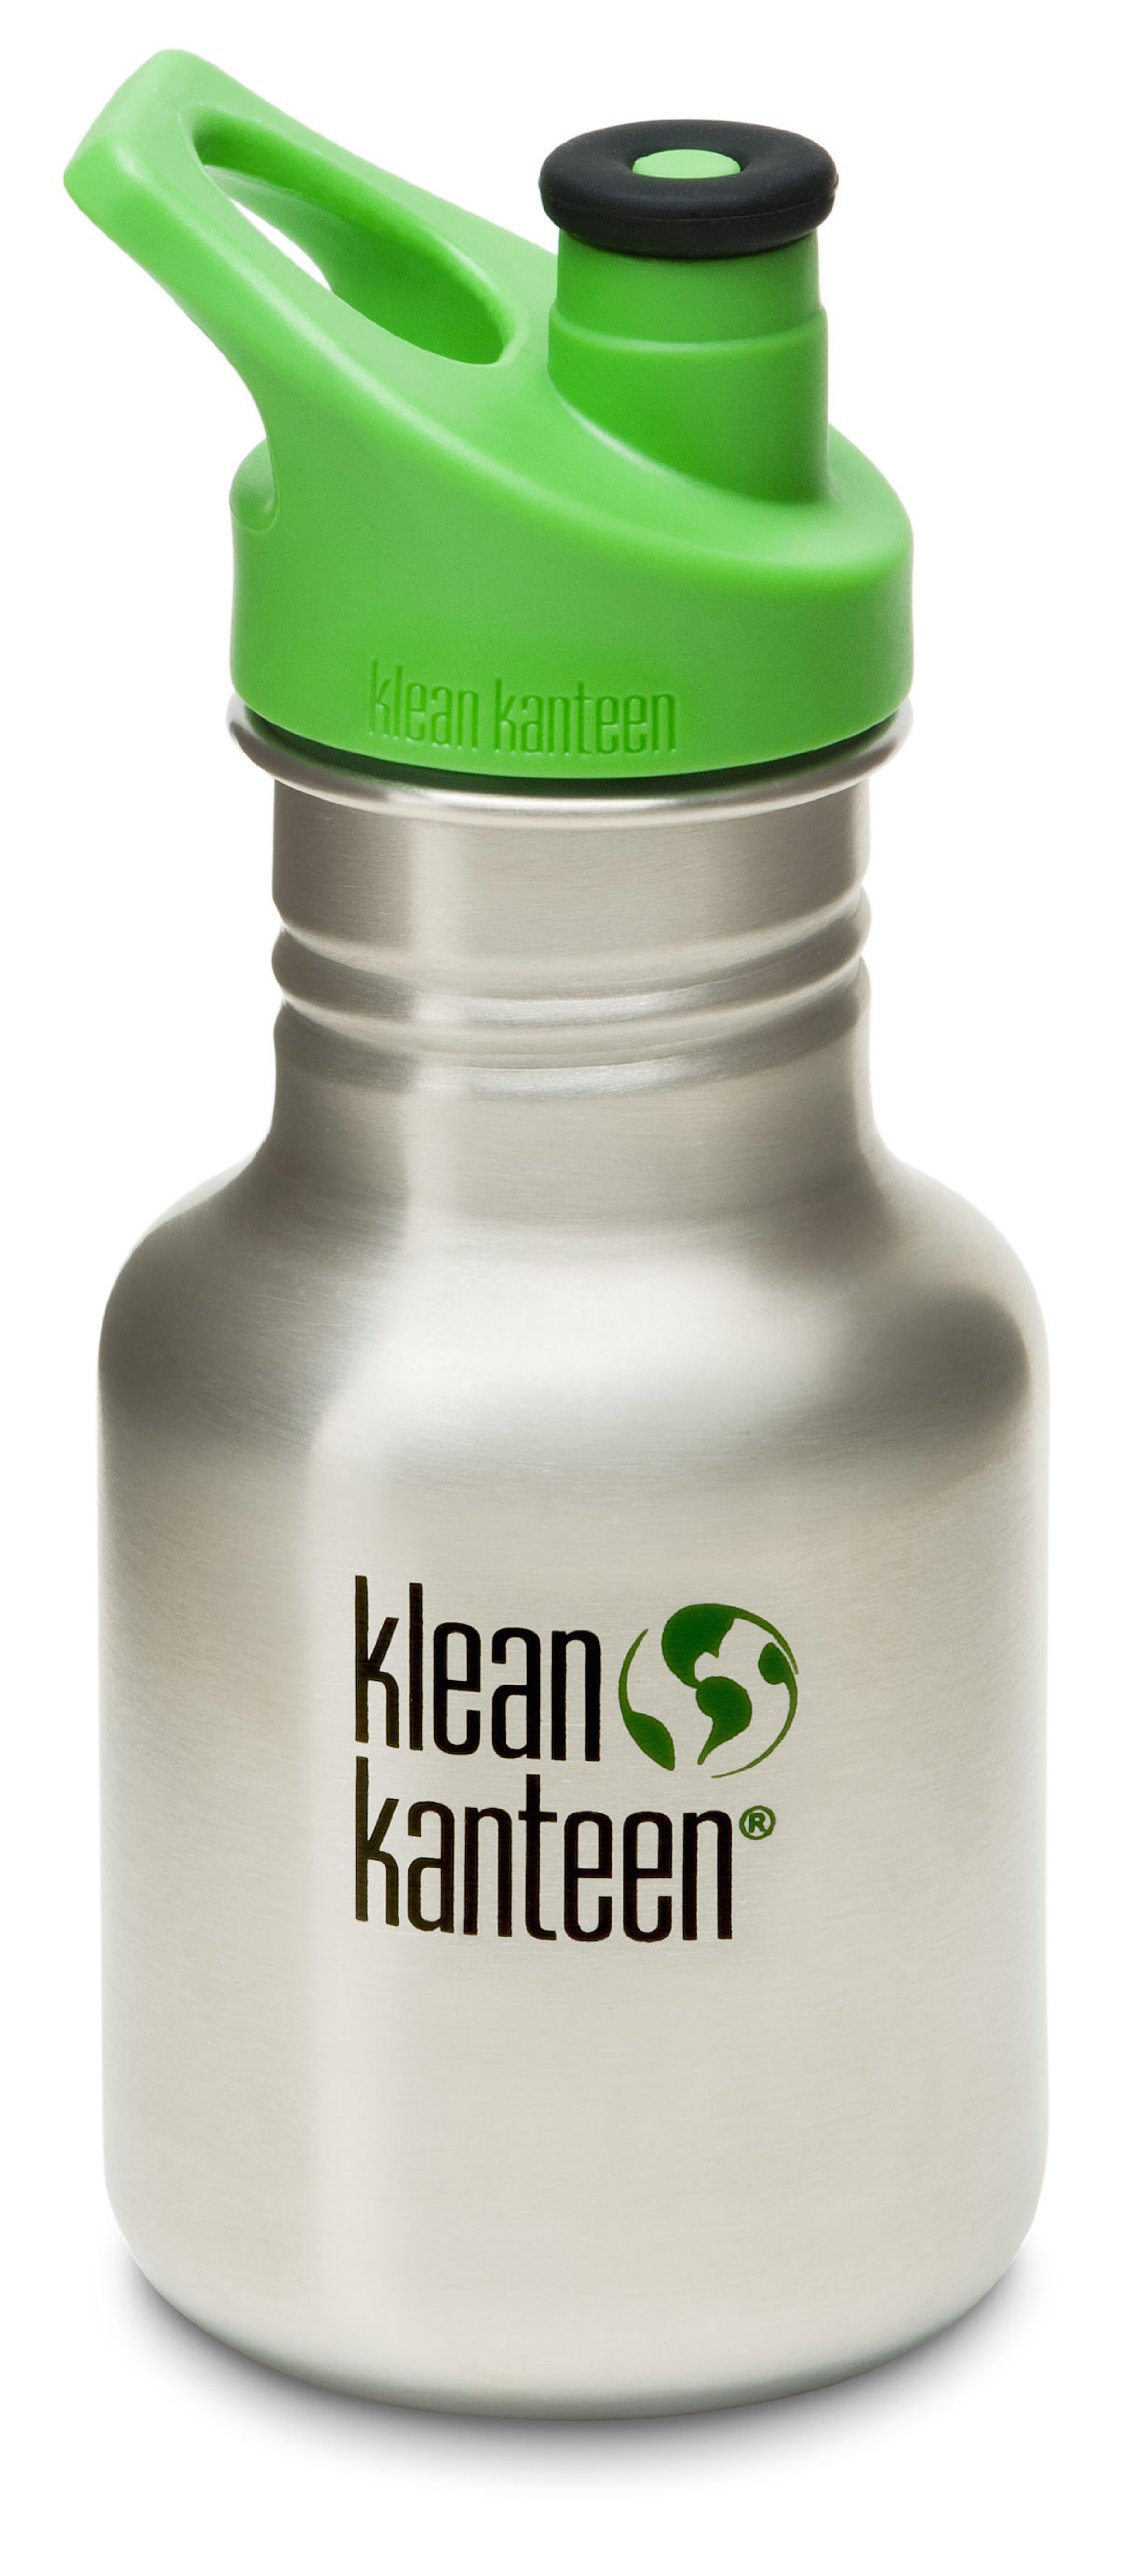 Klean Kanteen Kid Kanteen Classic Sport Single Wall Stainless Steel Kids Water Bottle with Sport Cap 3.0 Brushed Stainless